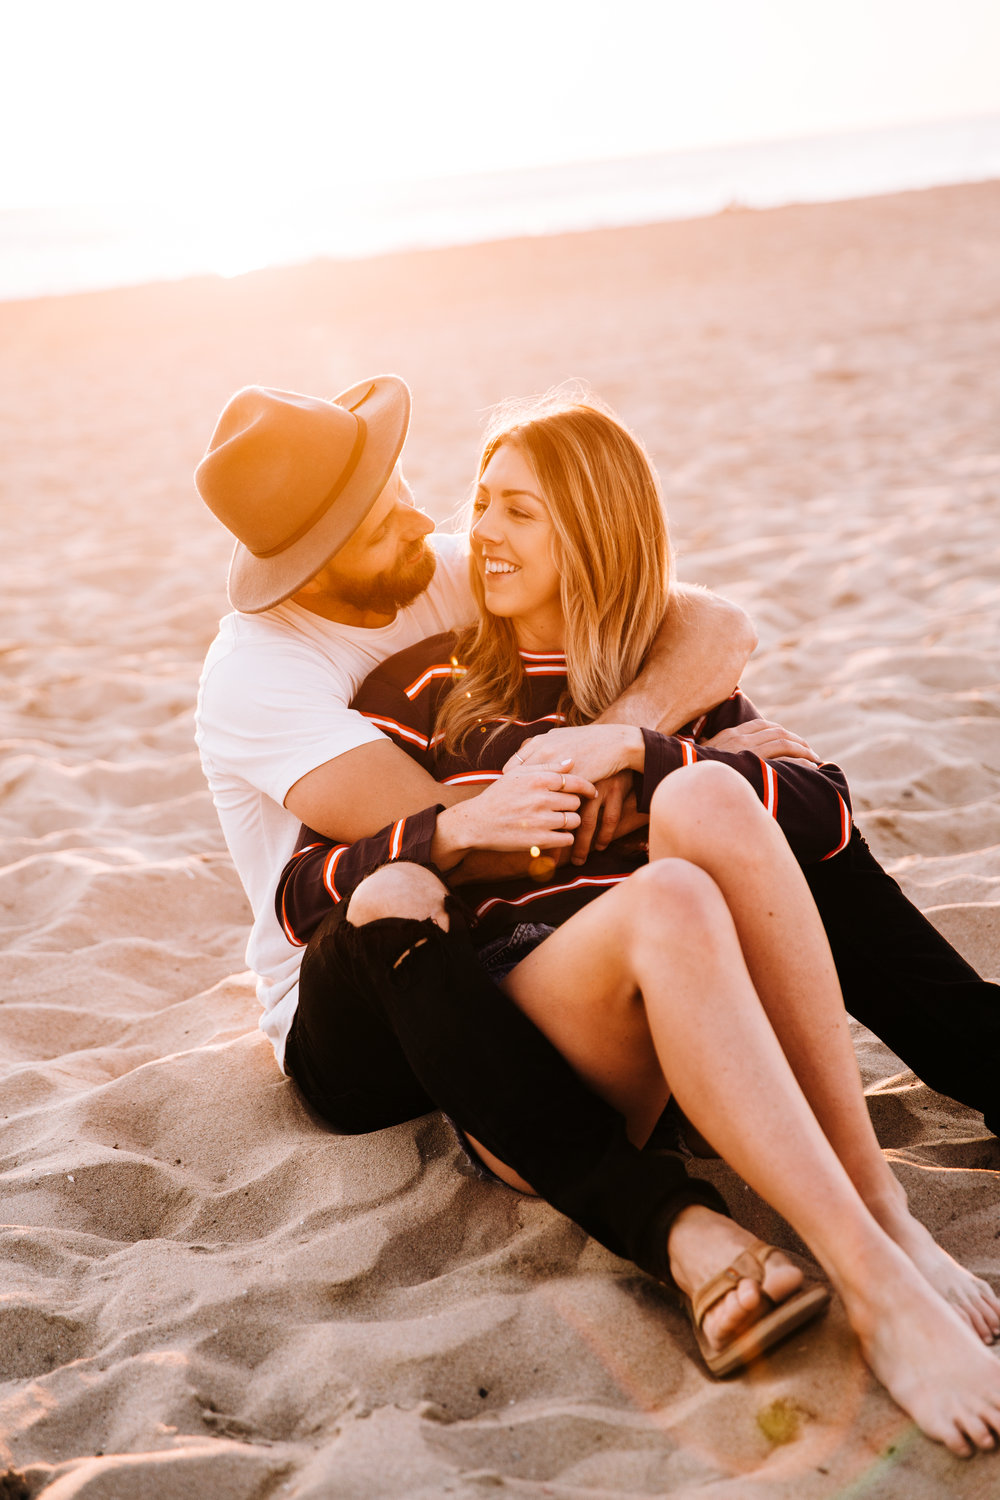 Orange County engagement photographer, Southern California engagement photographer, Newport Beach engagement photographer, Newport Beach engagement session, OC engagement photographer, OC photographer